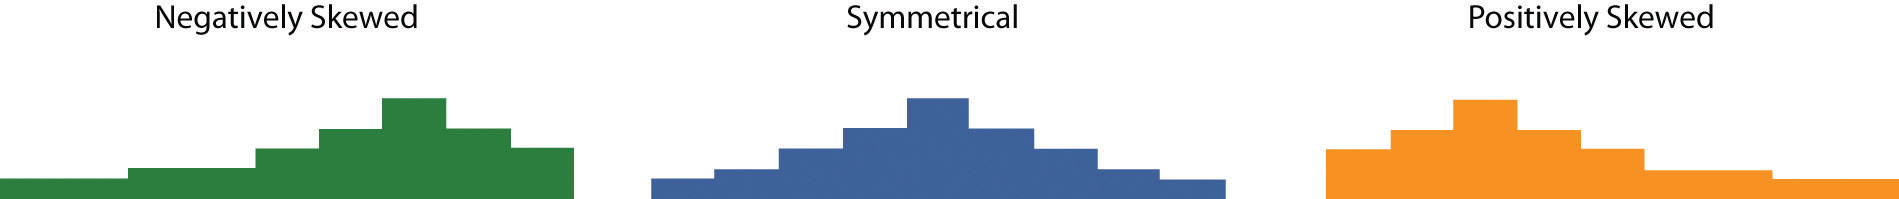 Histograms Showing Negatively Skewed, Symmetrical, and Positively Skewed Distributions